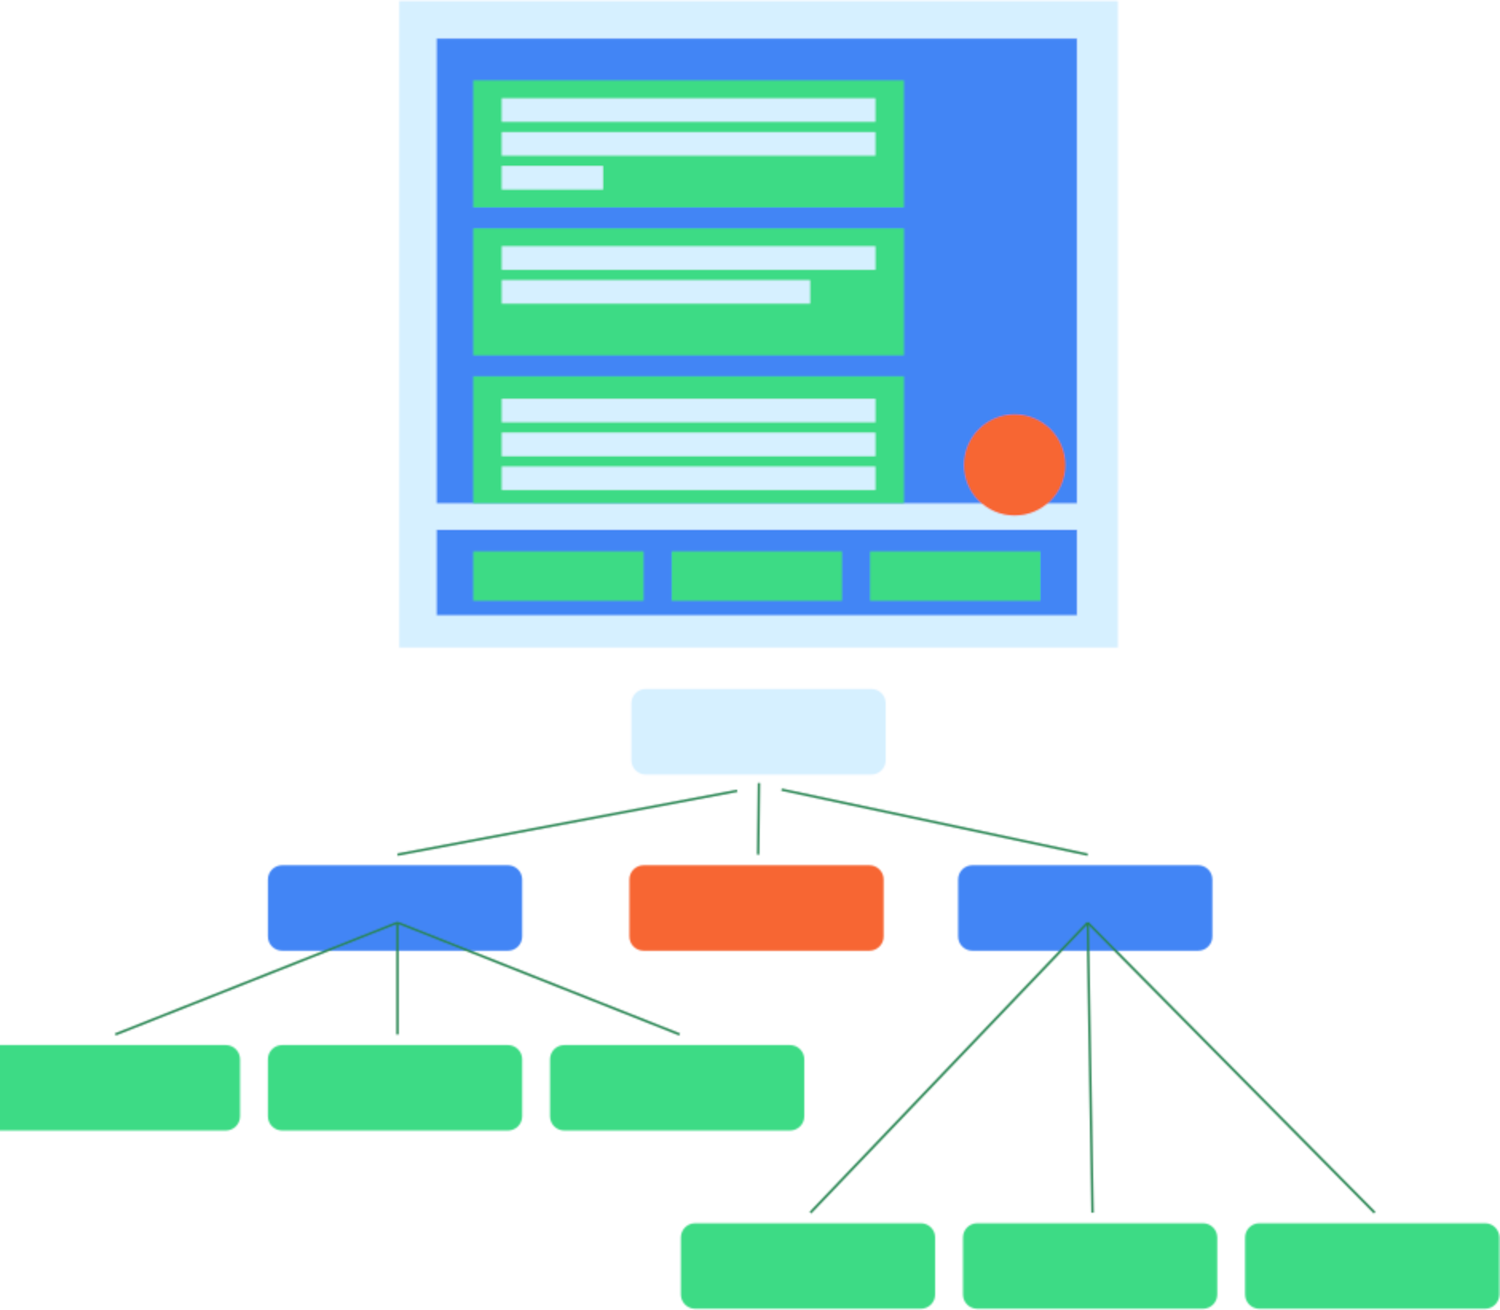 Diagram showing a typical UI layout, and the way that layout would map to a corresponding semantic tree